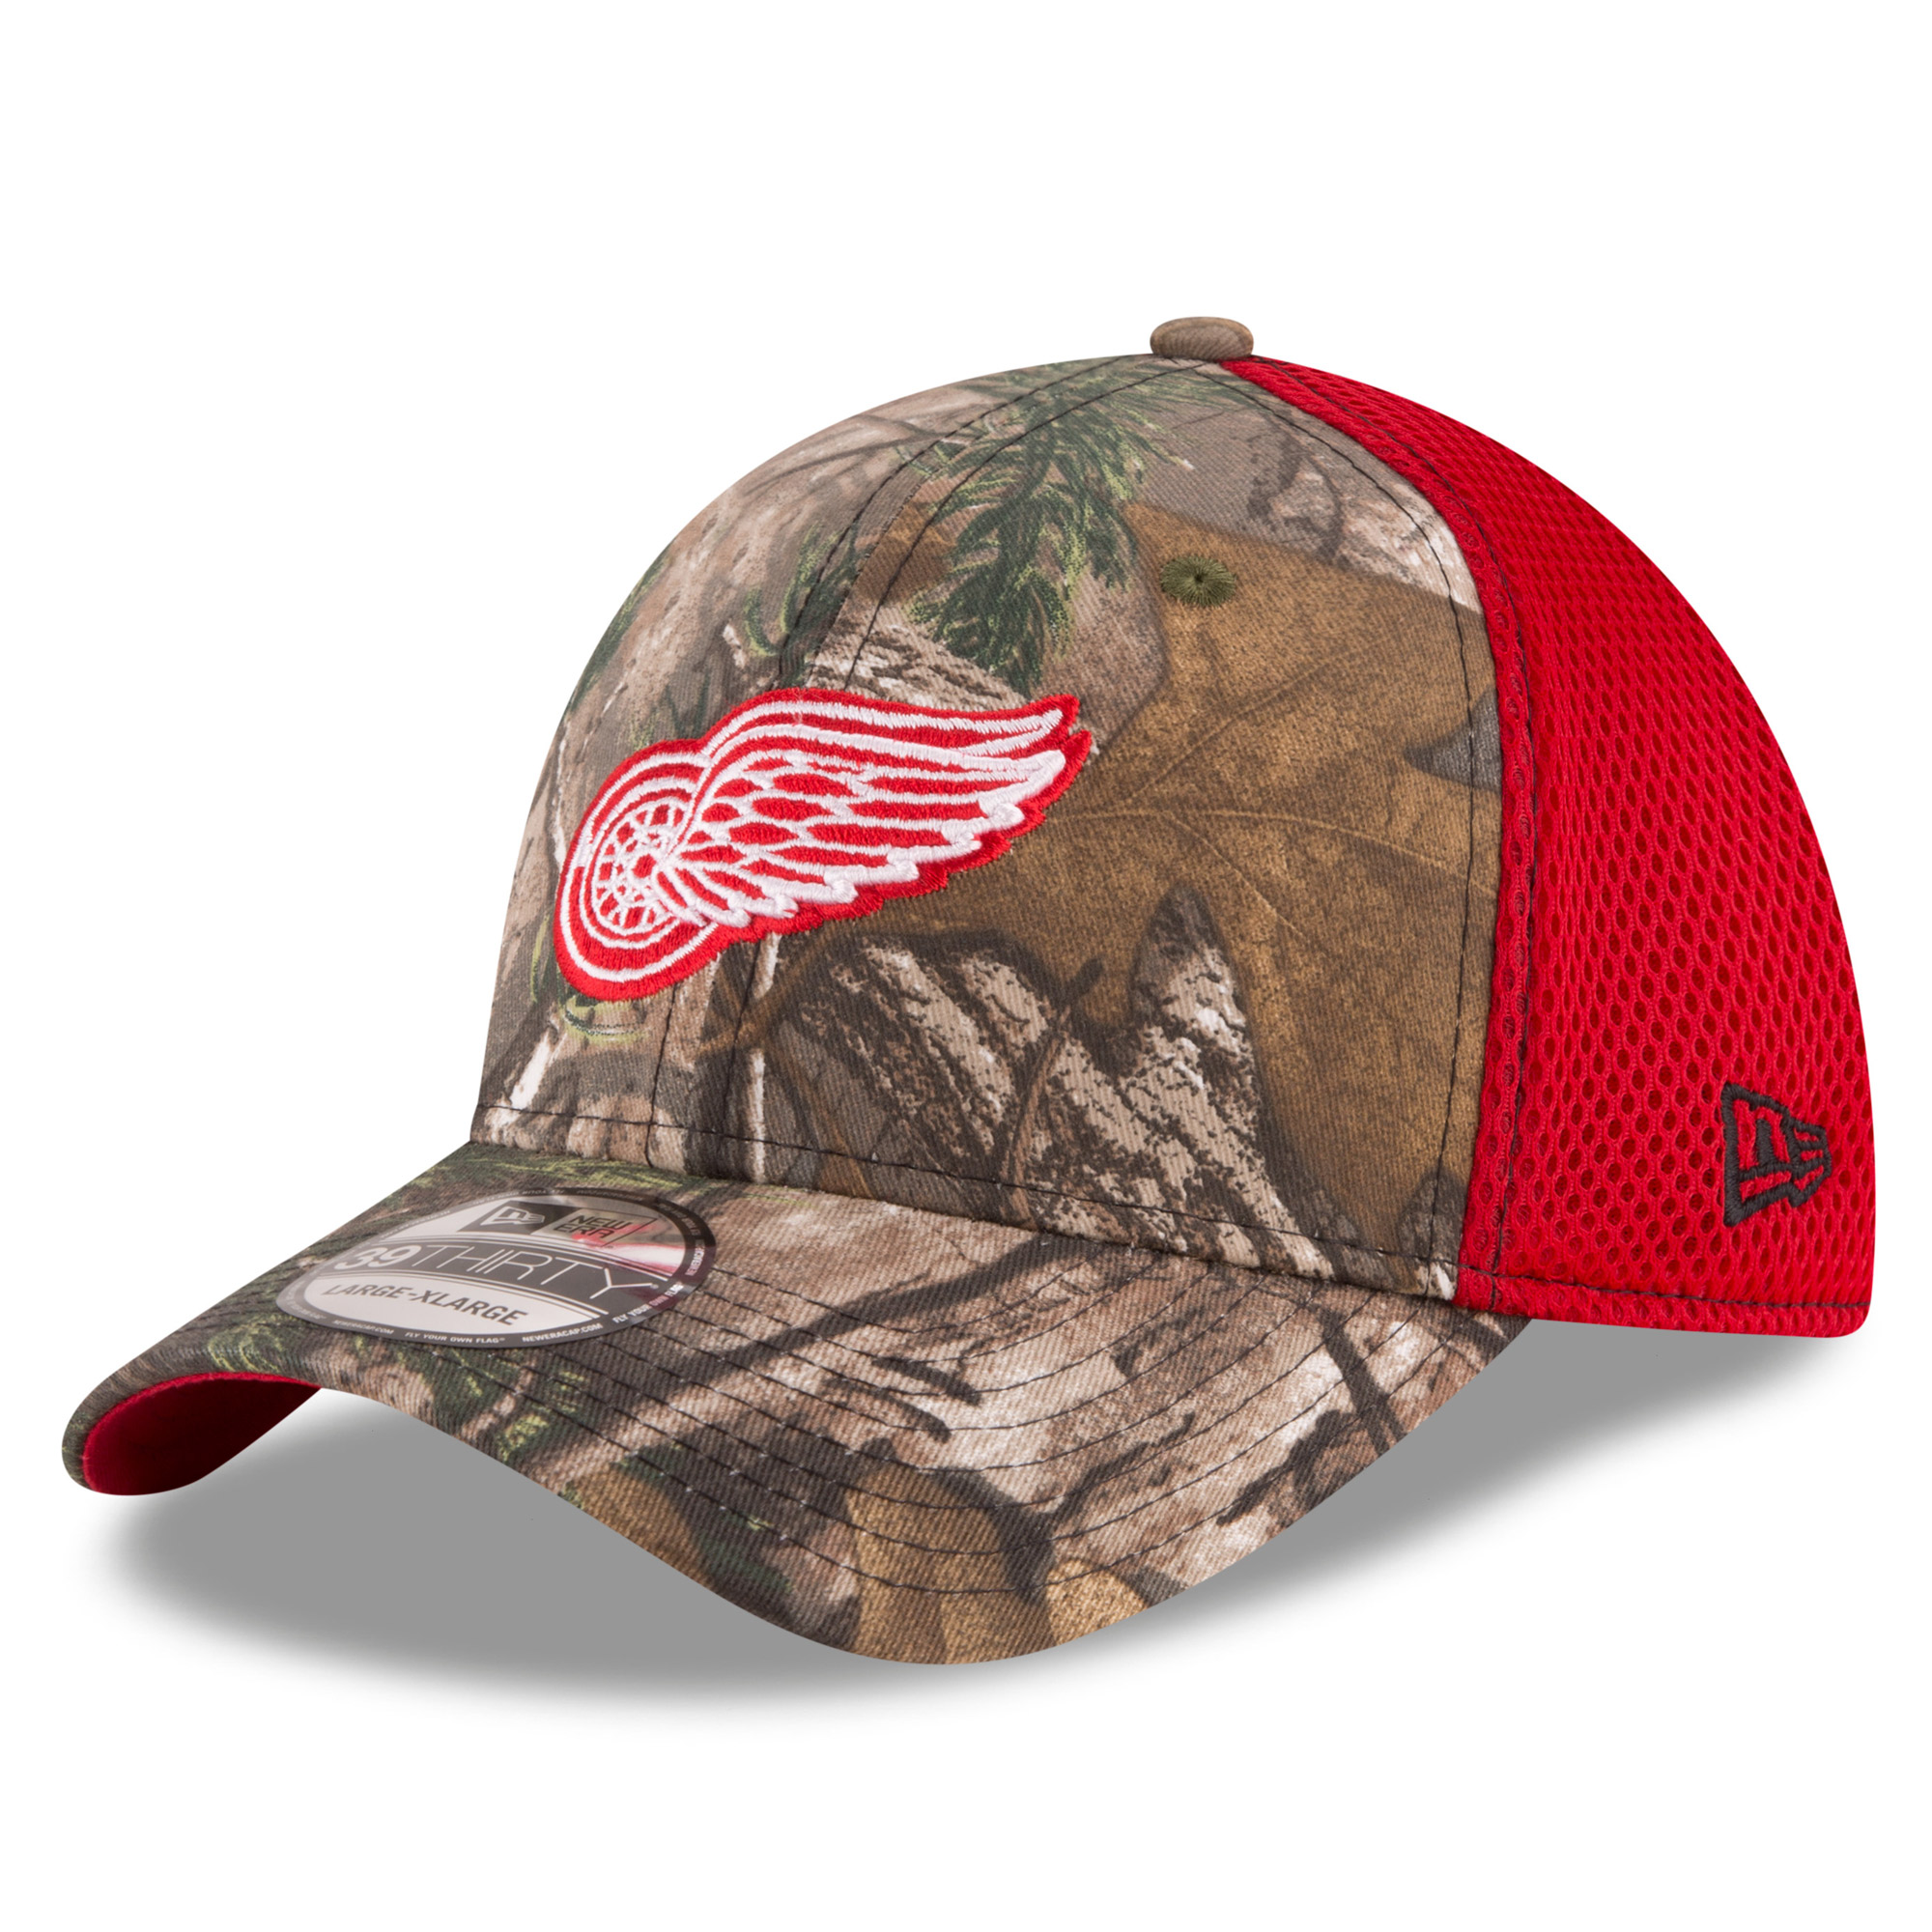 Detroit Red Wings New Era Neo 39THIRTY Flex Hat - Realtree Camo/Red